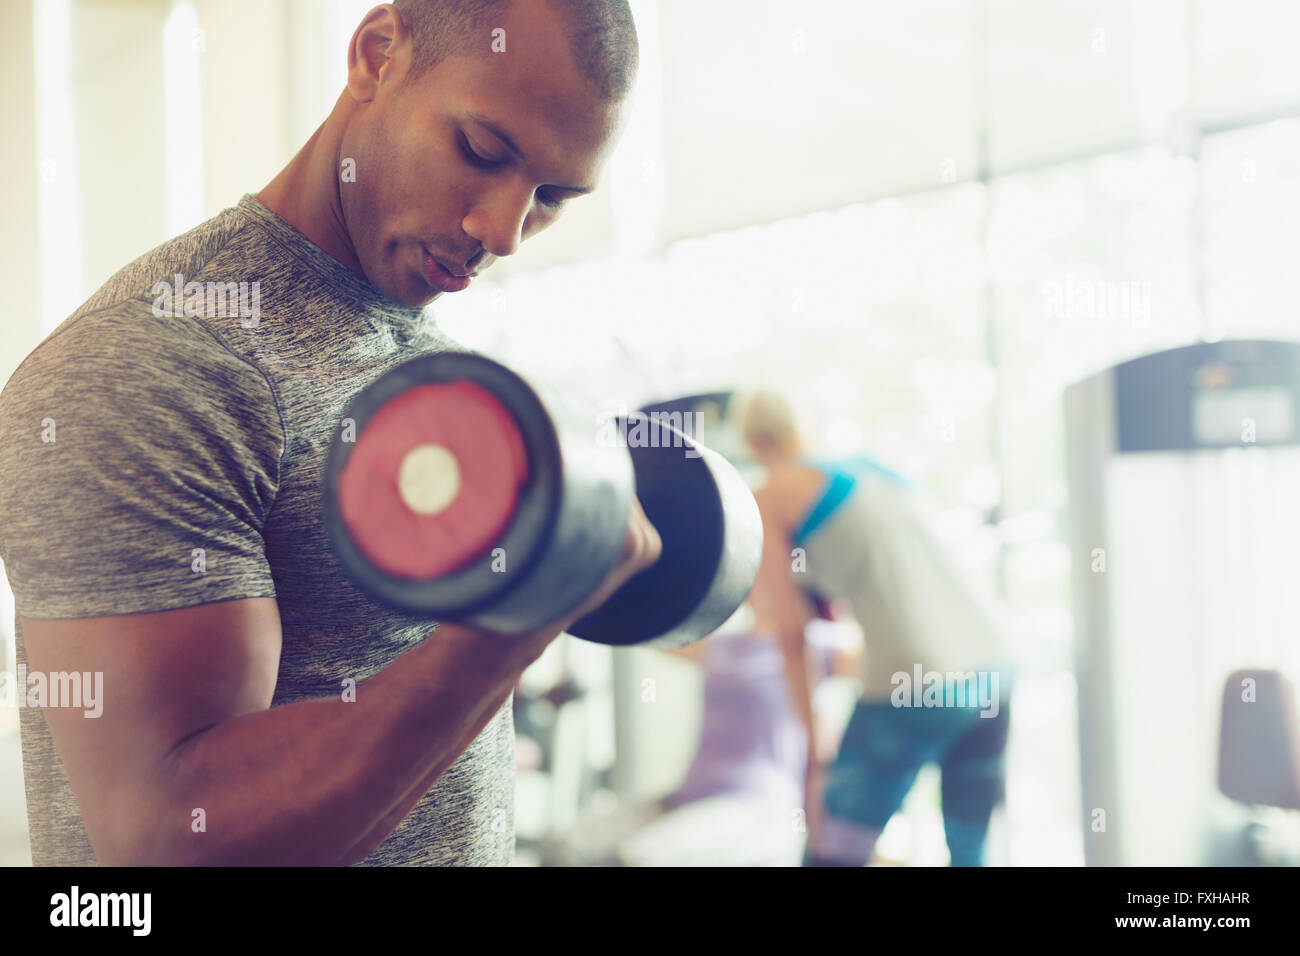 Focused man doing dumbbell biceps curls at gym - Stock Image